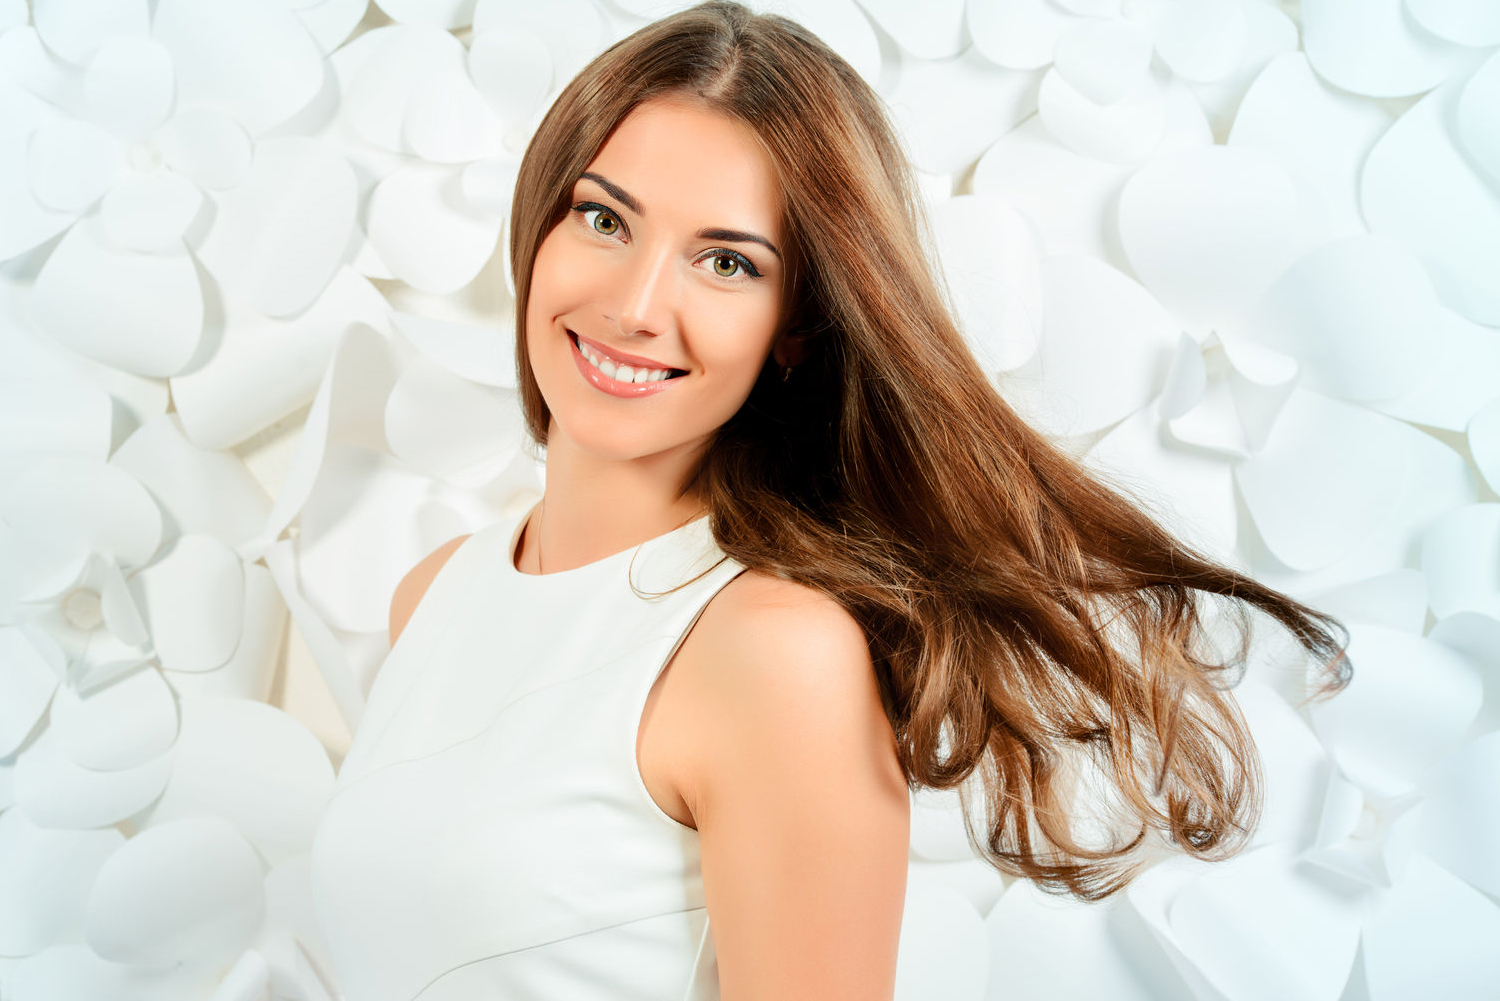 Join our Membership Program today - and start saving on your favorite treatments and products!